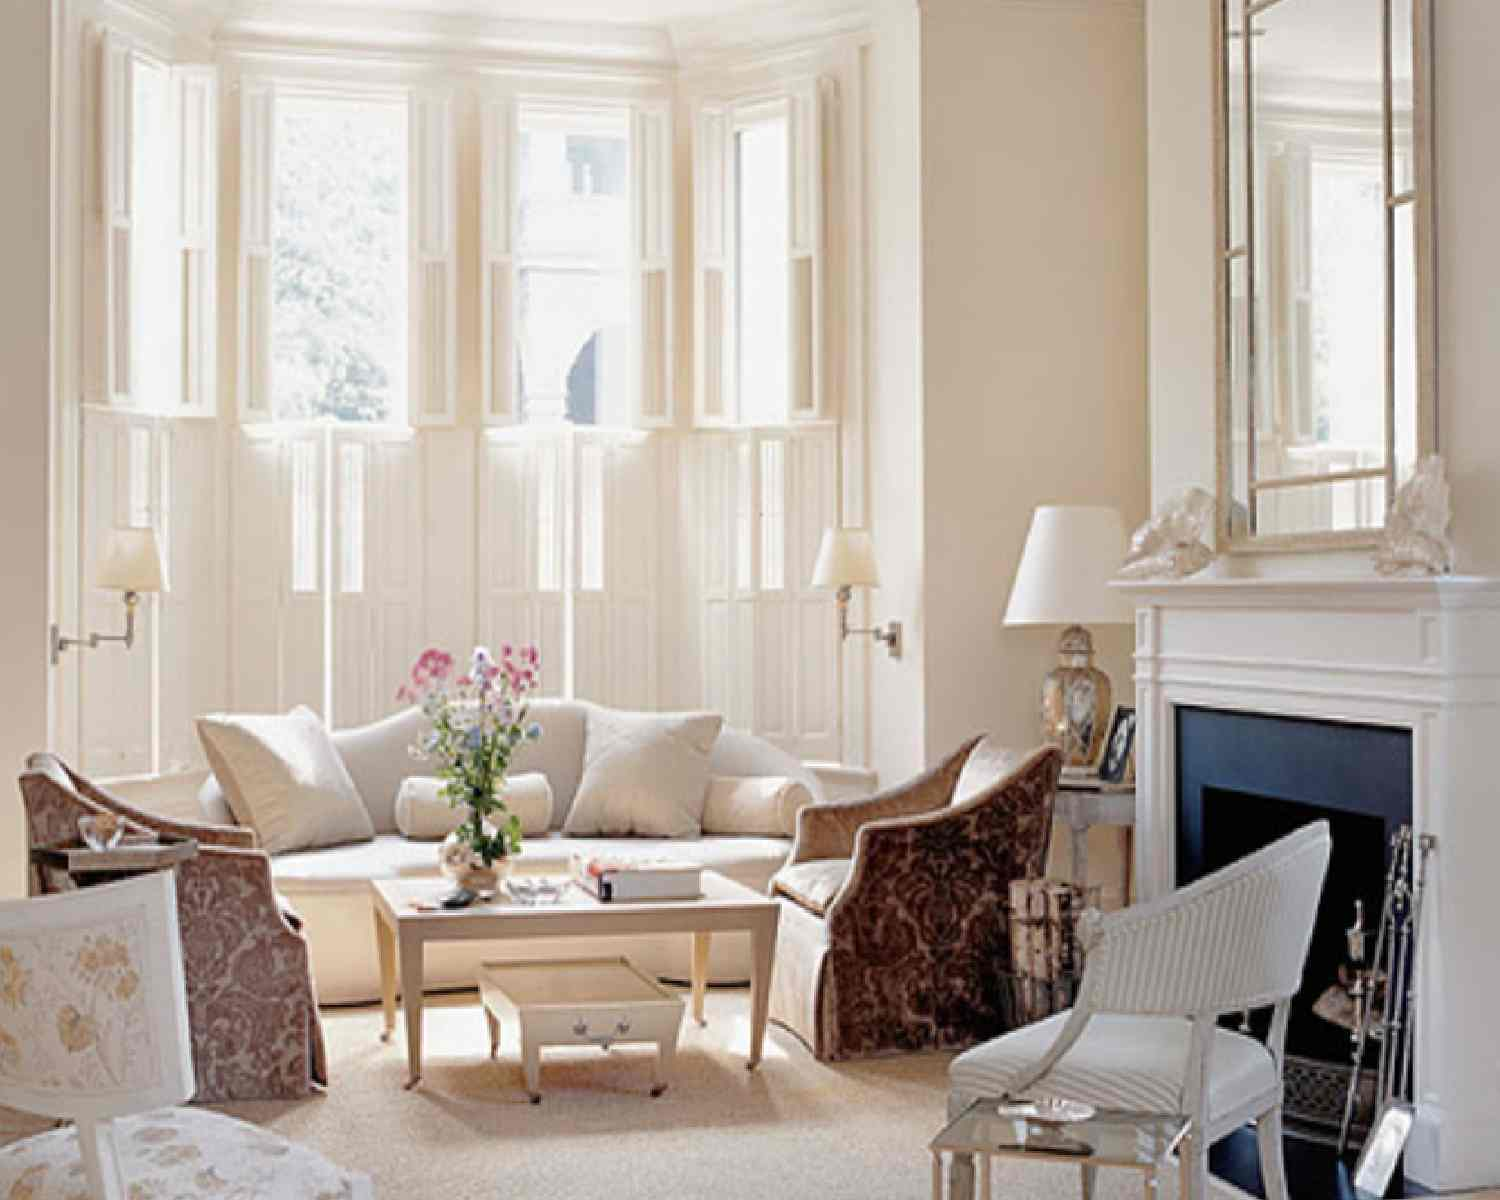 Living Room Decorating Ideas Small Paint Color Modern Decor Design ...